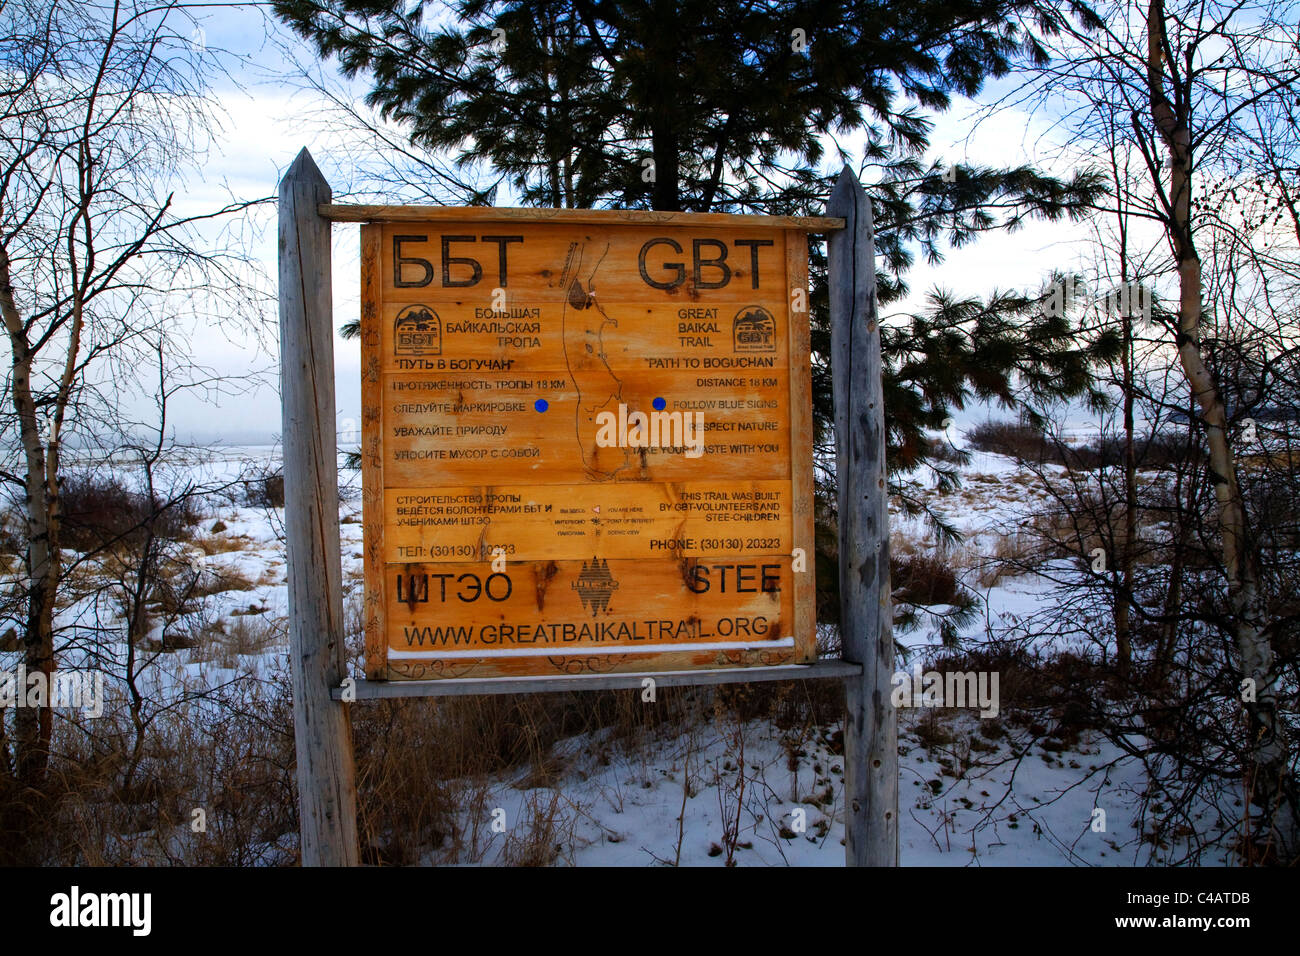 Russia, Siberia, Baikal; A notice giving information about the Great Baikal Trail; Stock Photo